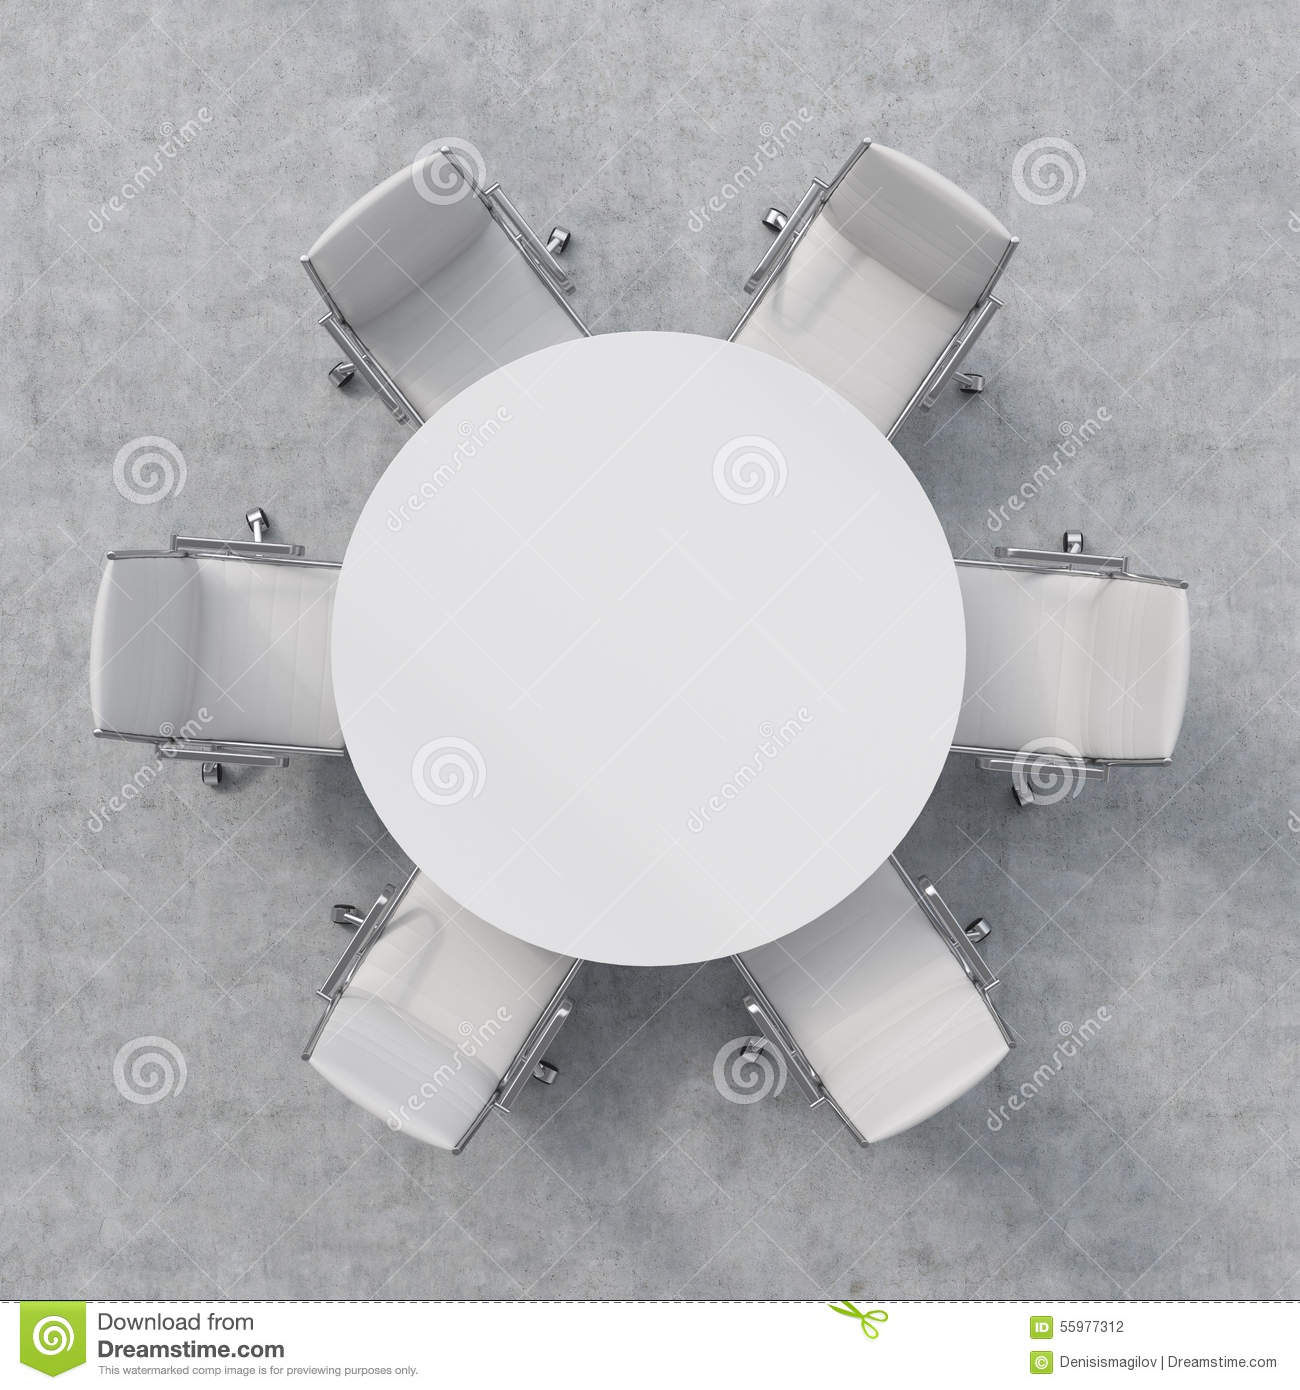 Top View Of A Conference Room A White Round Table And Six  : top view conference room white round table six chairs around d interior 55977312 from www.dreamstime.com size 1300 x 1390 jpeg 162kB